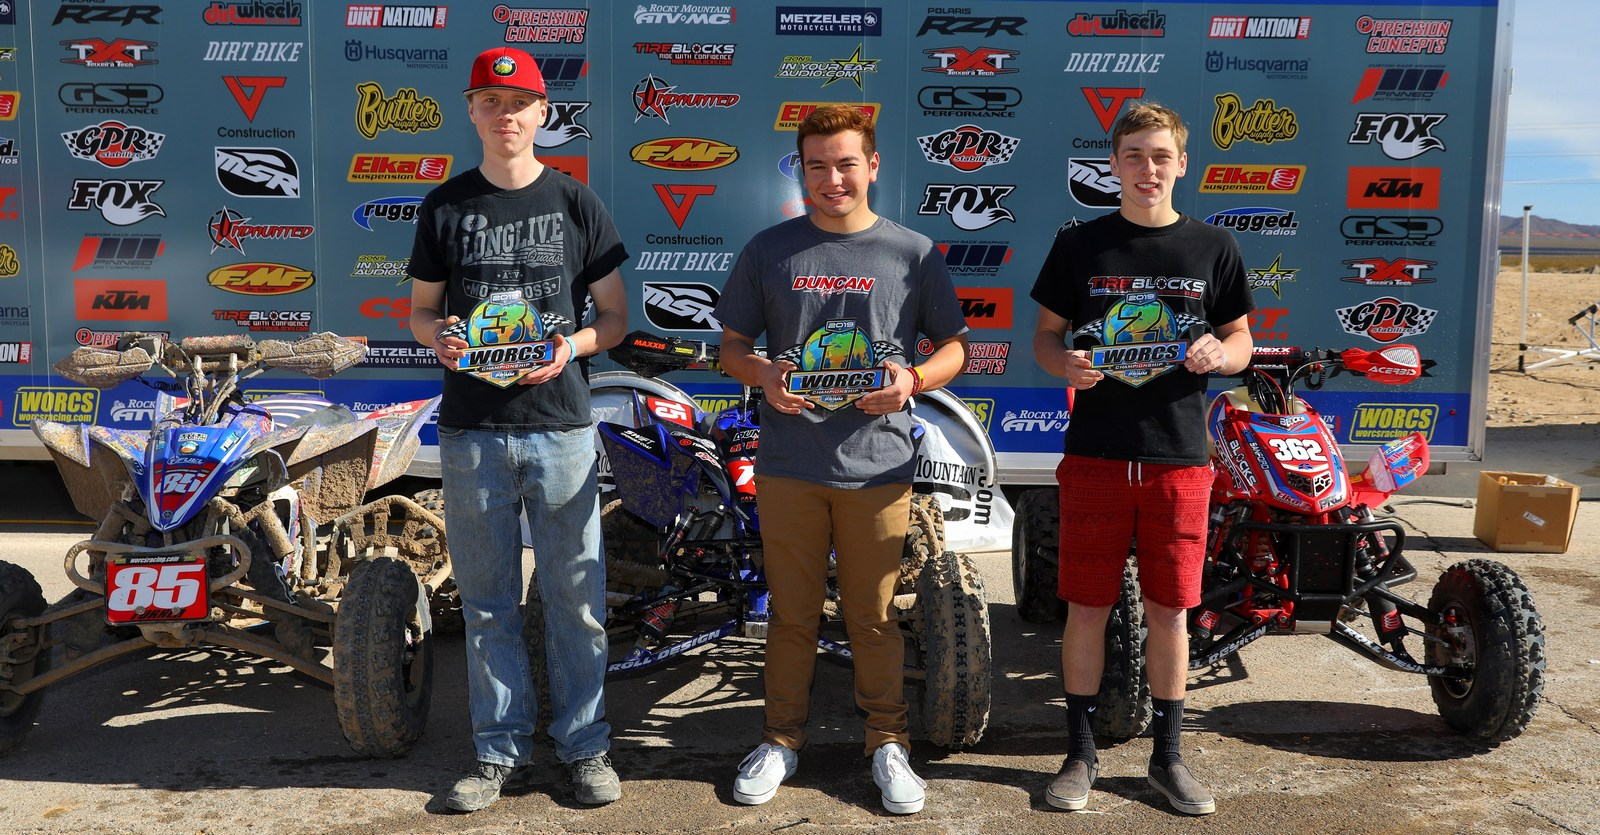 2019-01-podium-proam-atv-worcs-racing